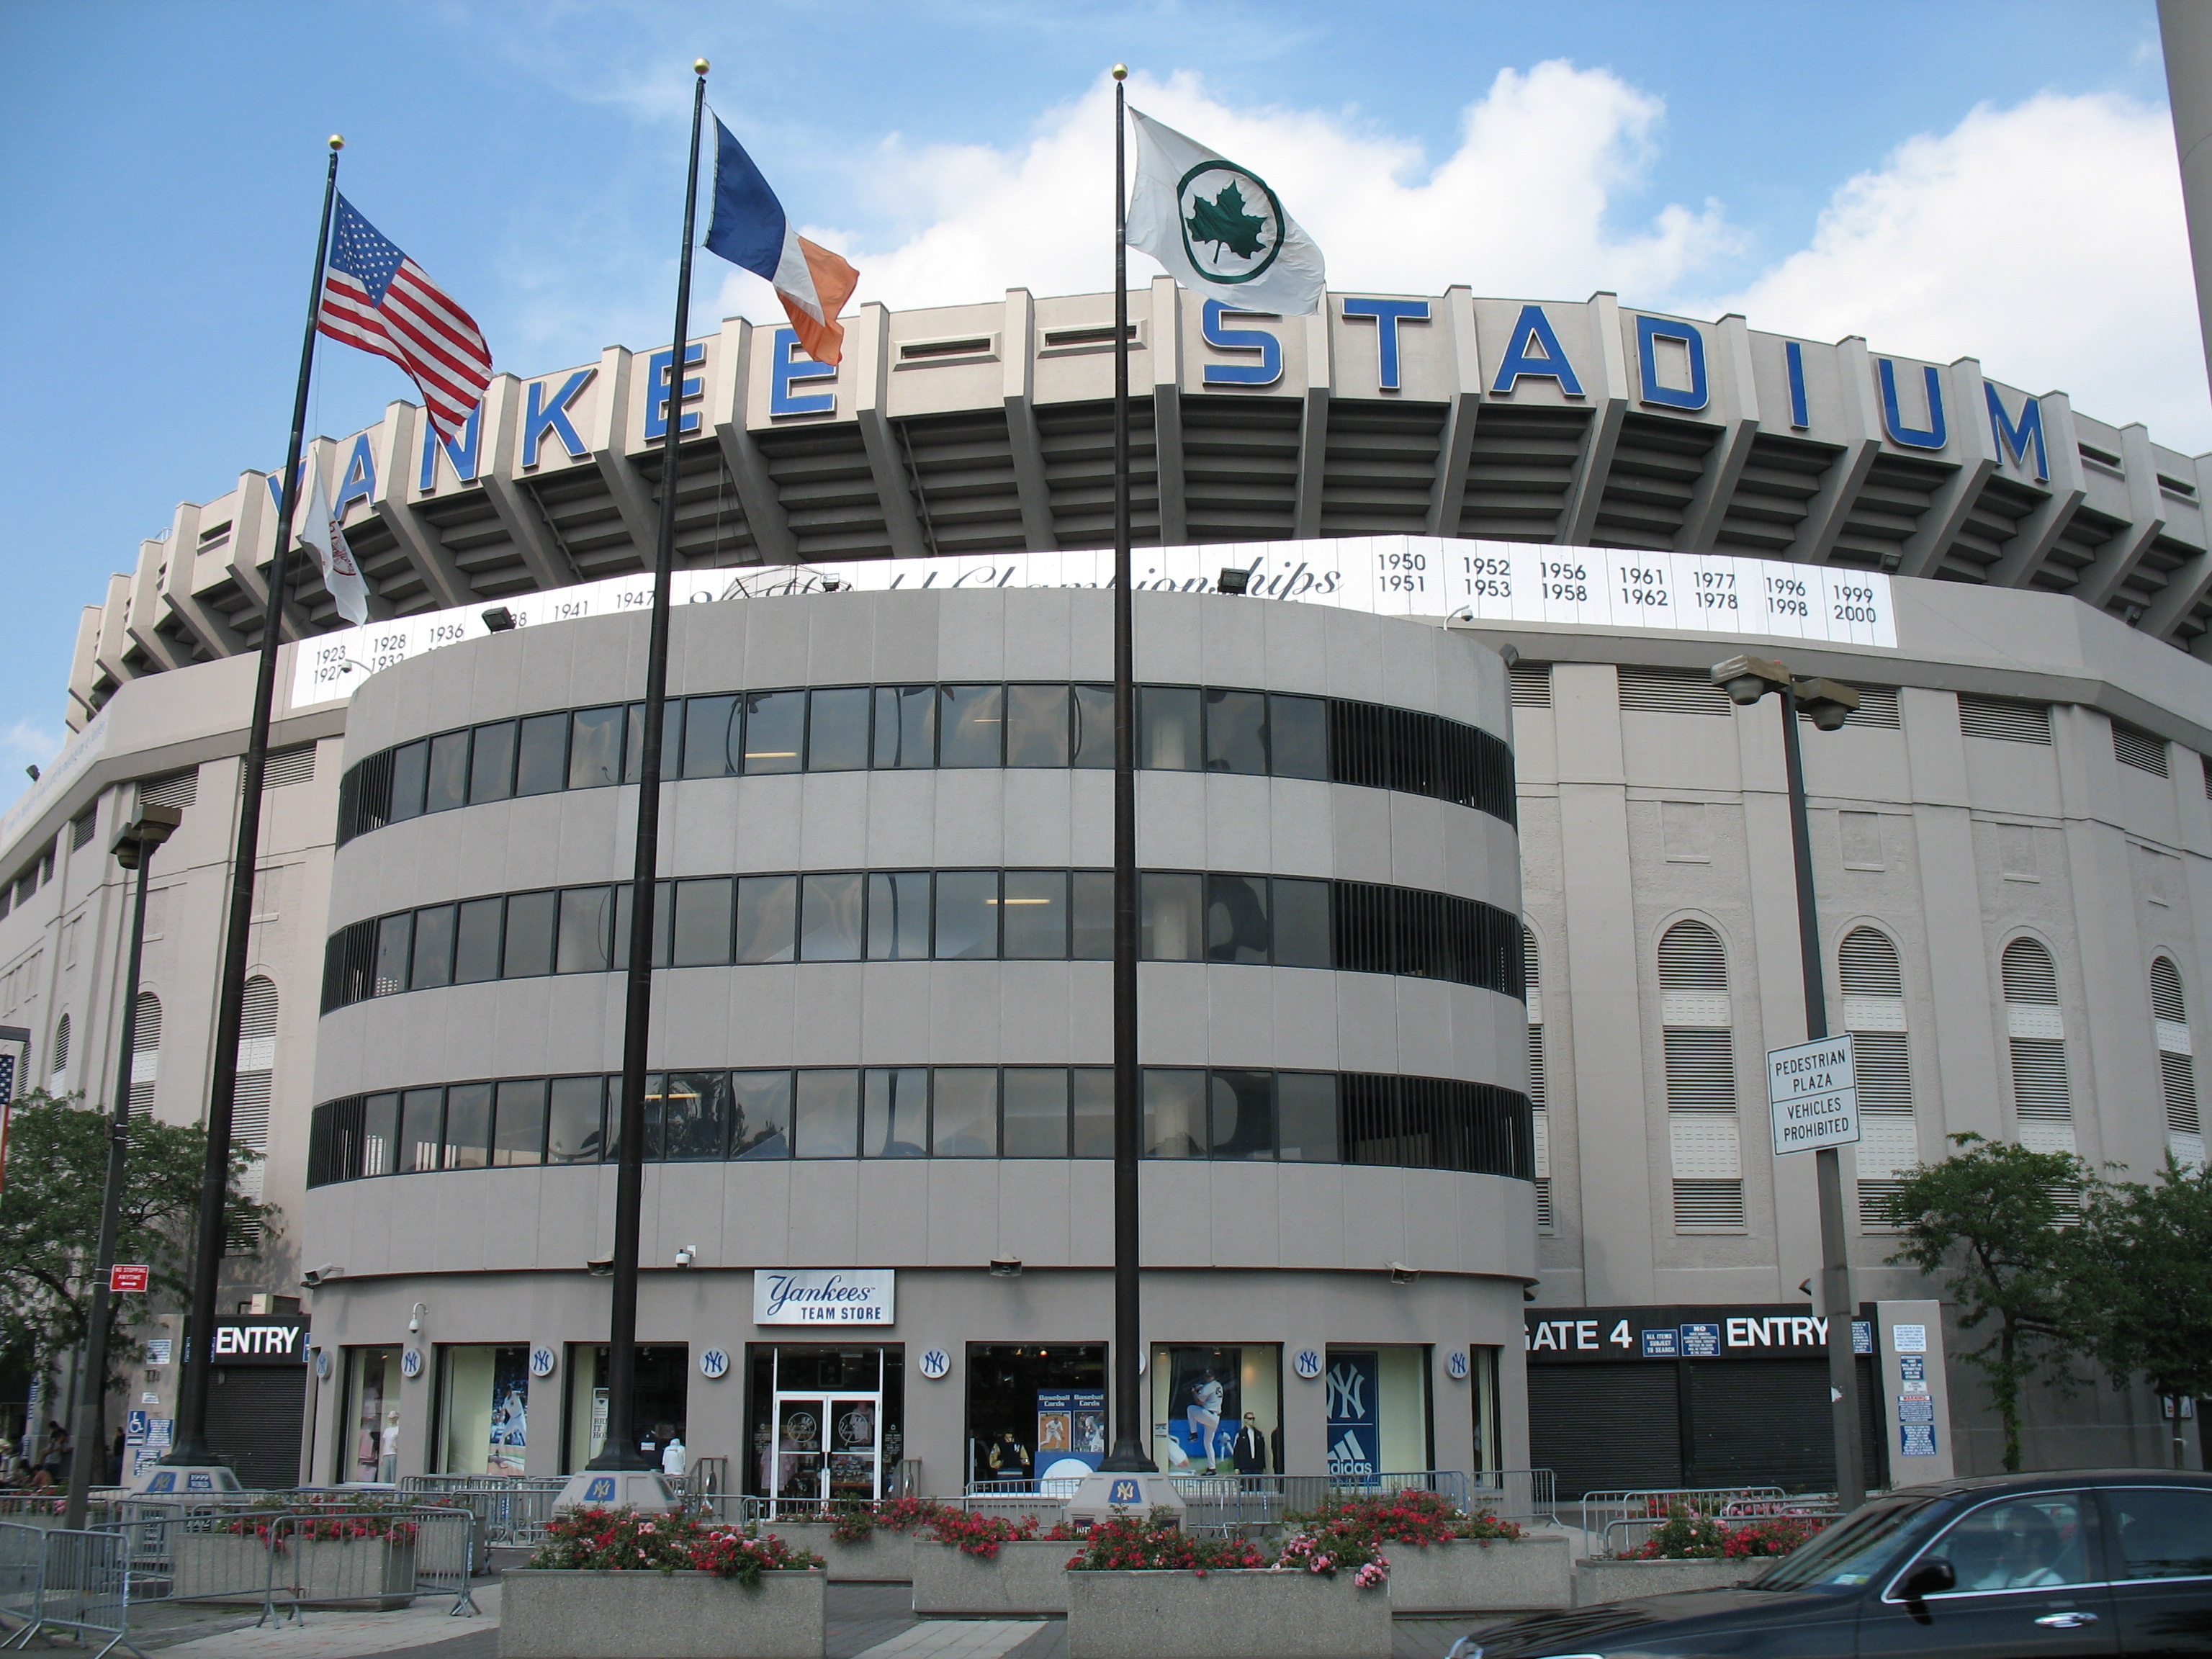 FileYankee stadium exteriorjpg   Wikipedia the encyclopedia 3072x2304